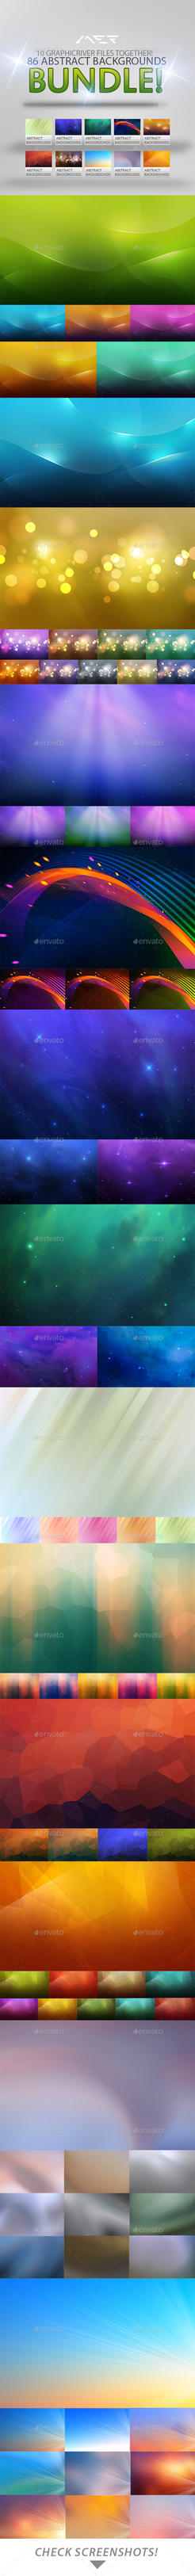 86 Abstract Backgrounds Bundle by M3-f-web